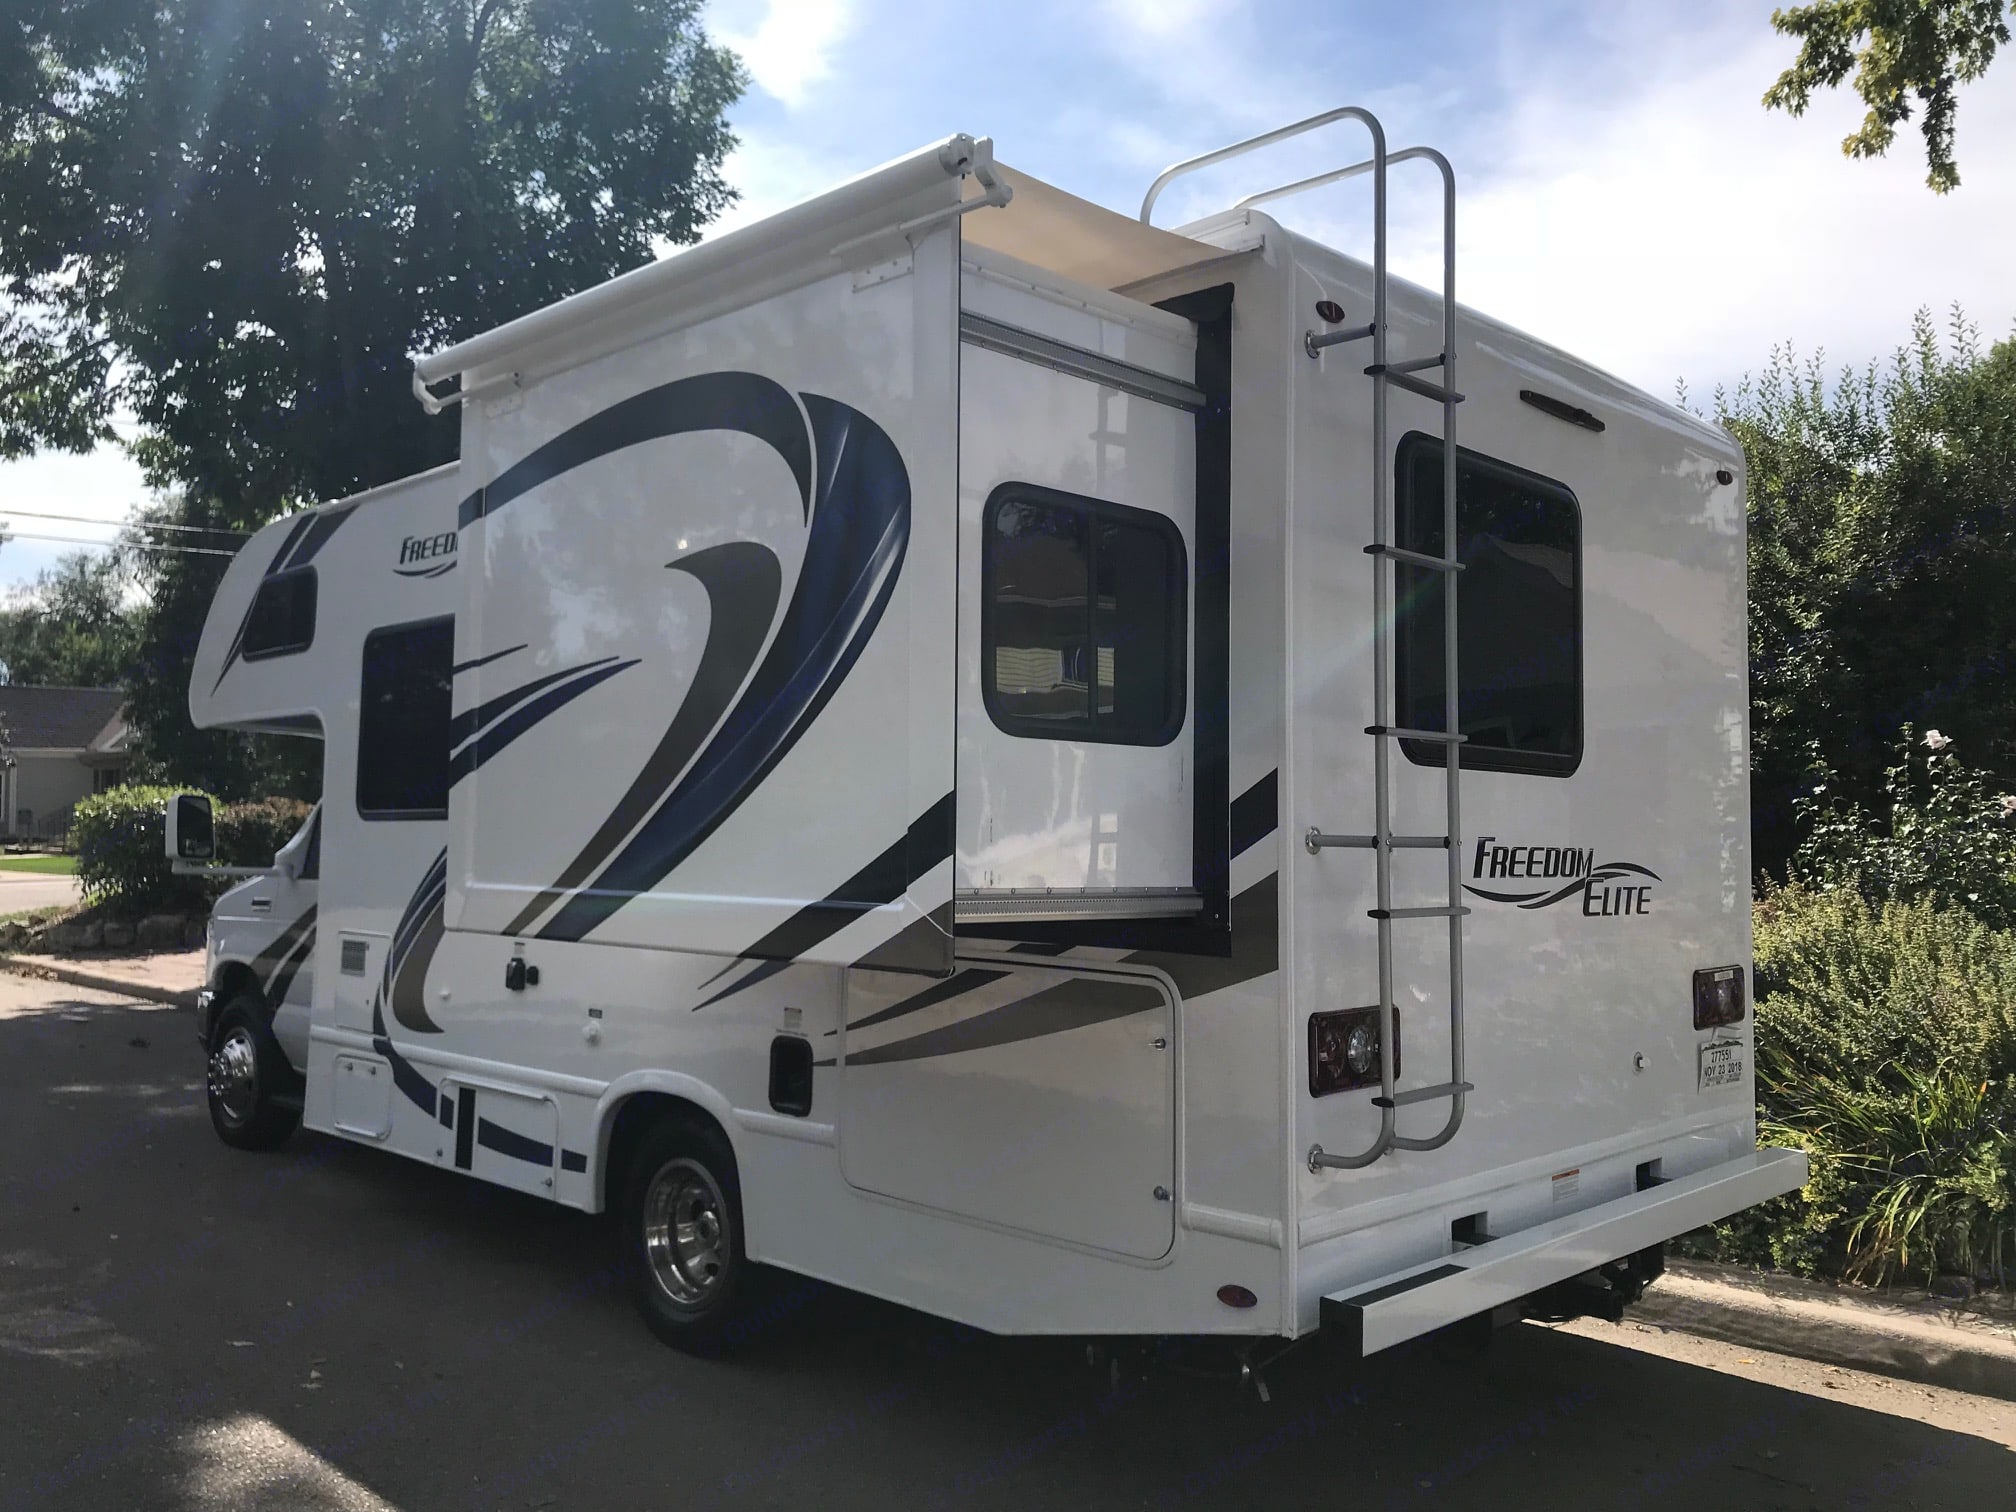 Slide out area is the bedroom which has 3 windows. Thor Motor Coach Freedom Elite 2019